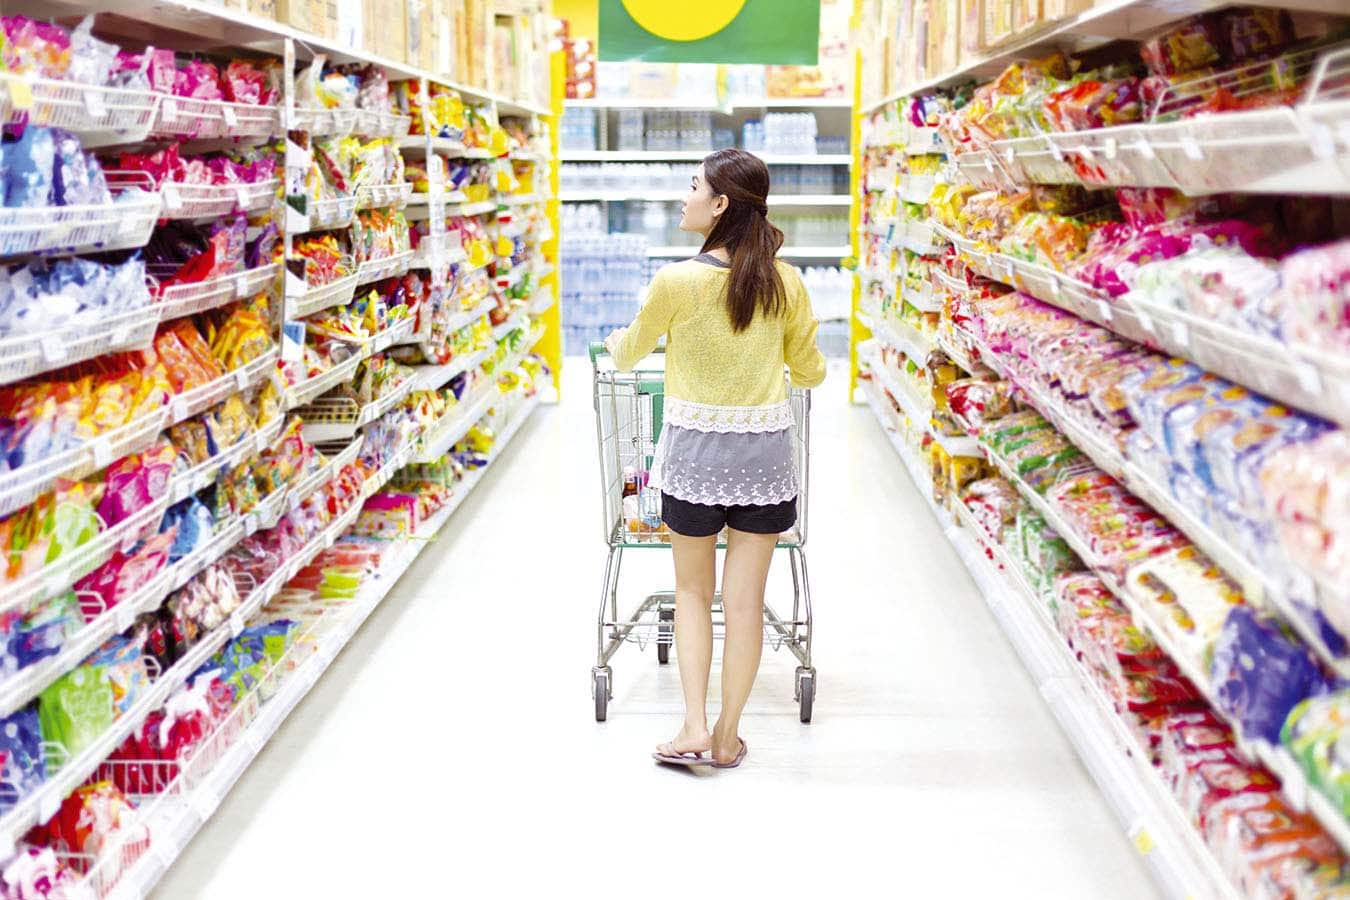 Shopper with grocery cart walking down store aisle